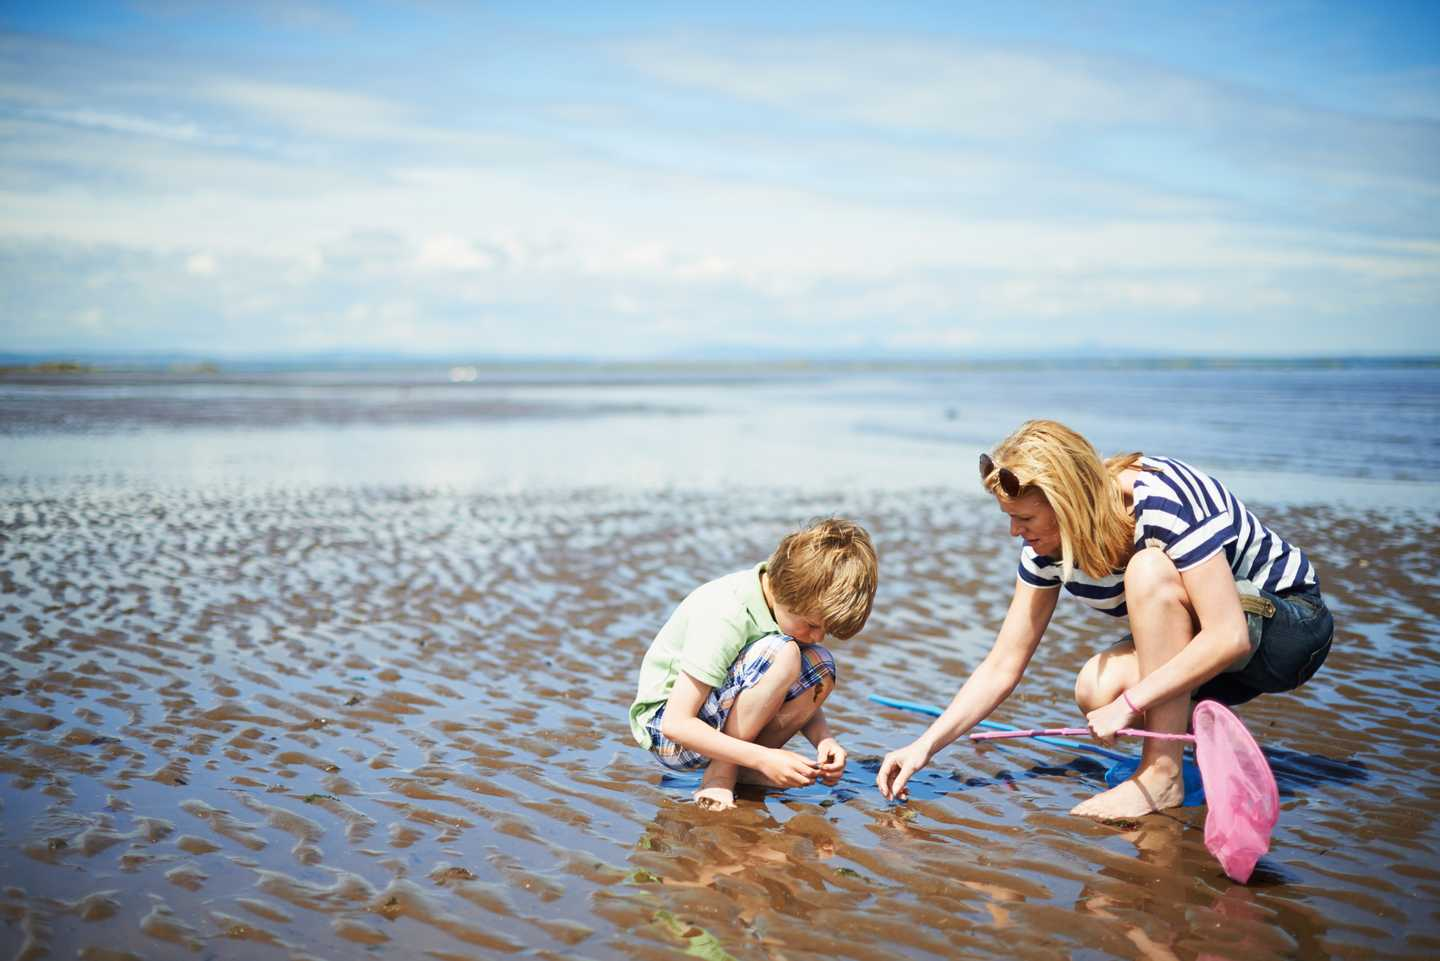 A mother and son on the beach playing in the shallow water of the sea